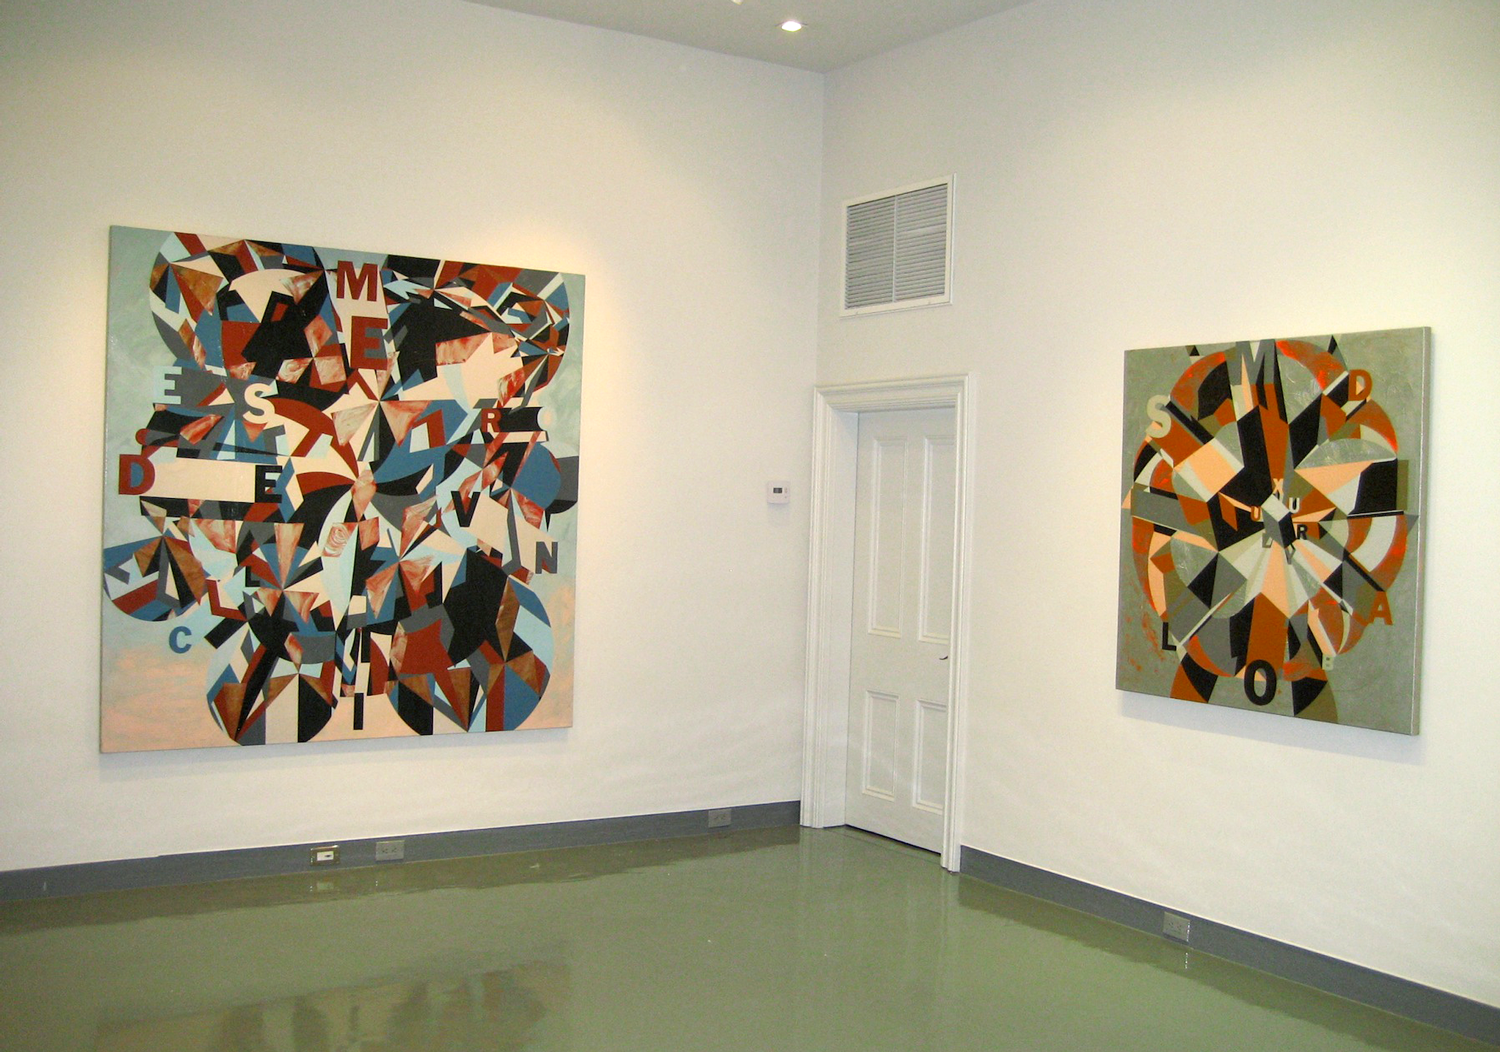 Martine Chaisson Gallery, New Orleans, 2011